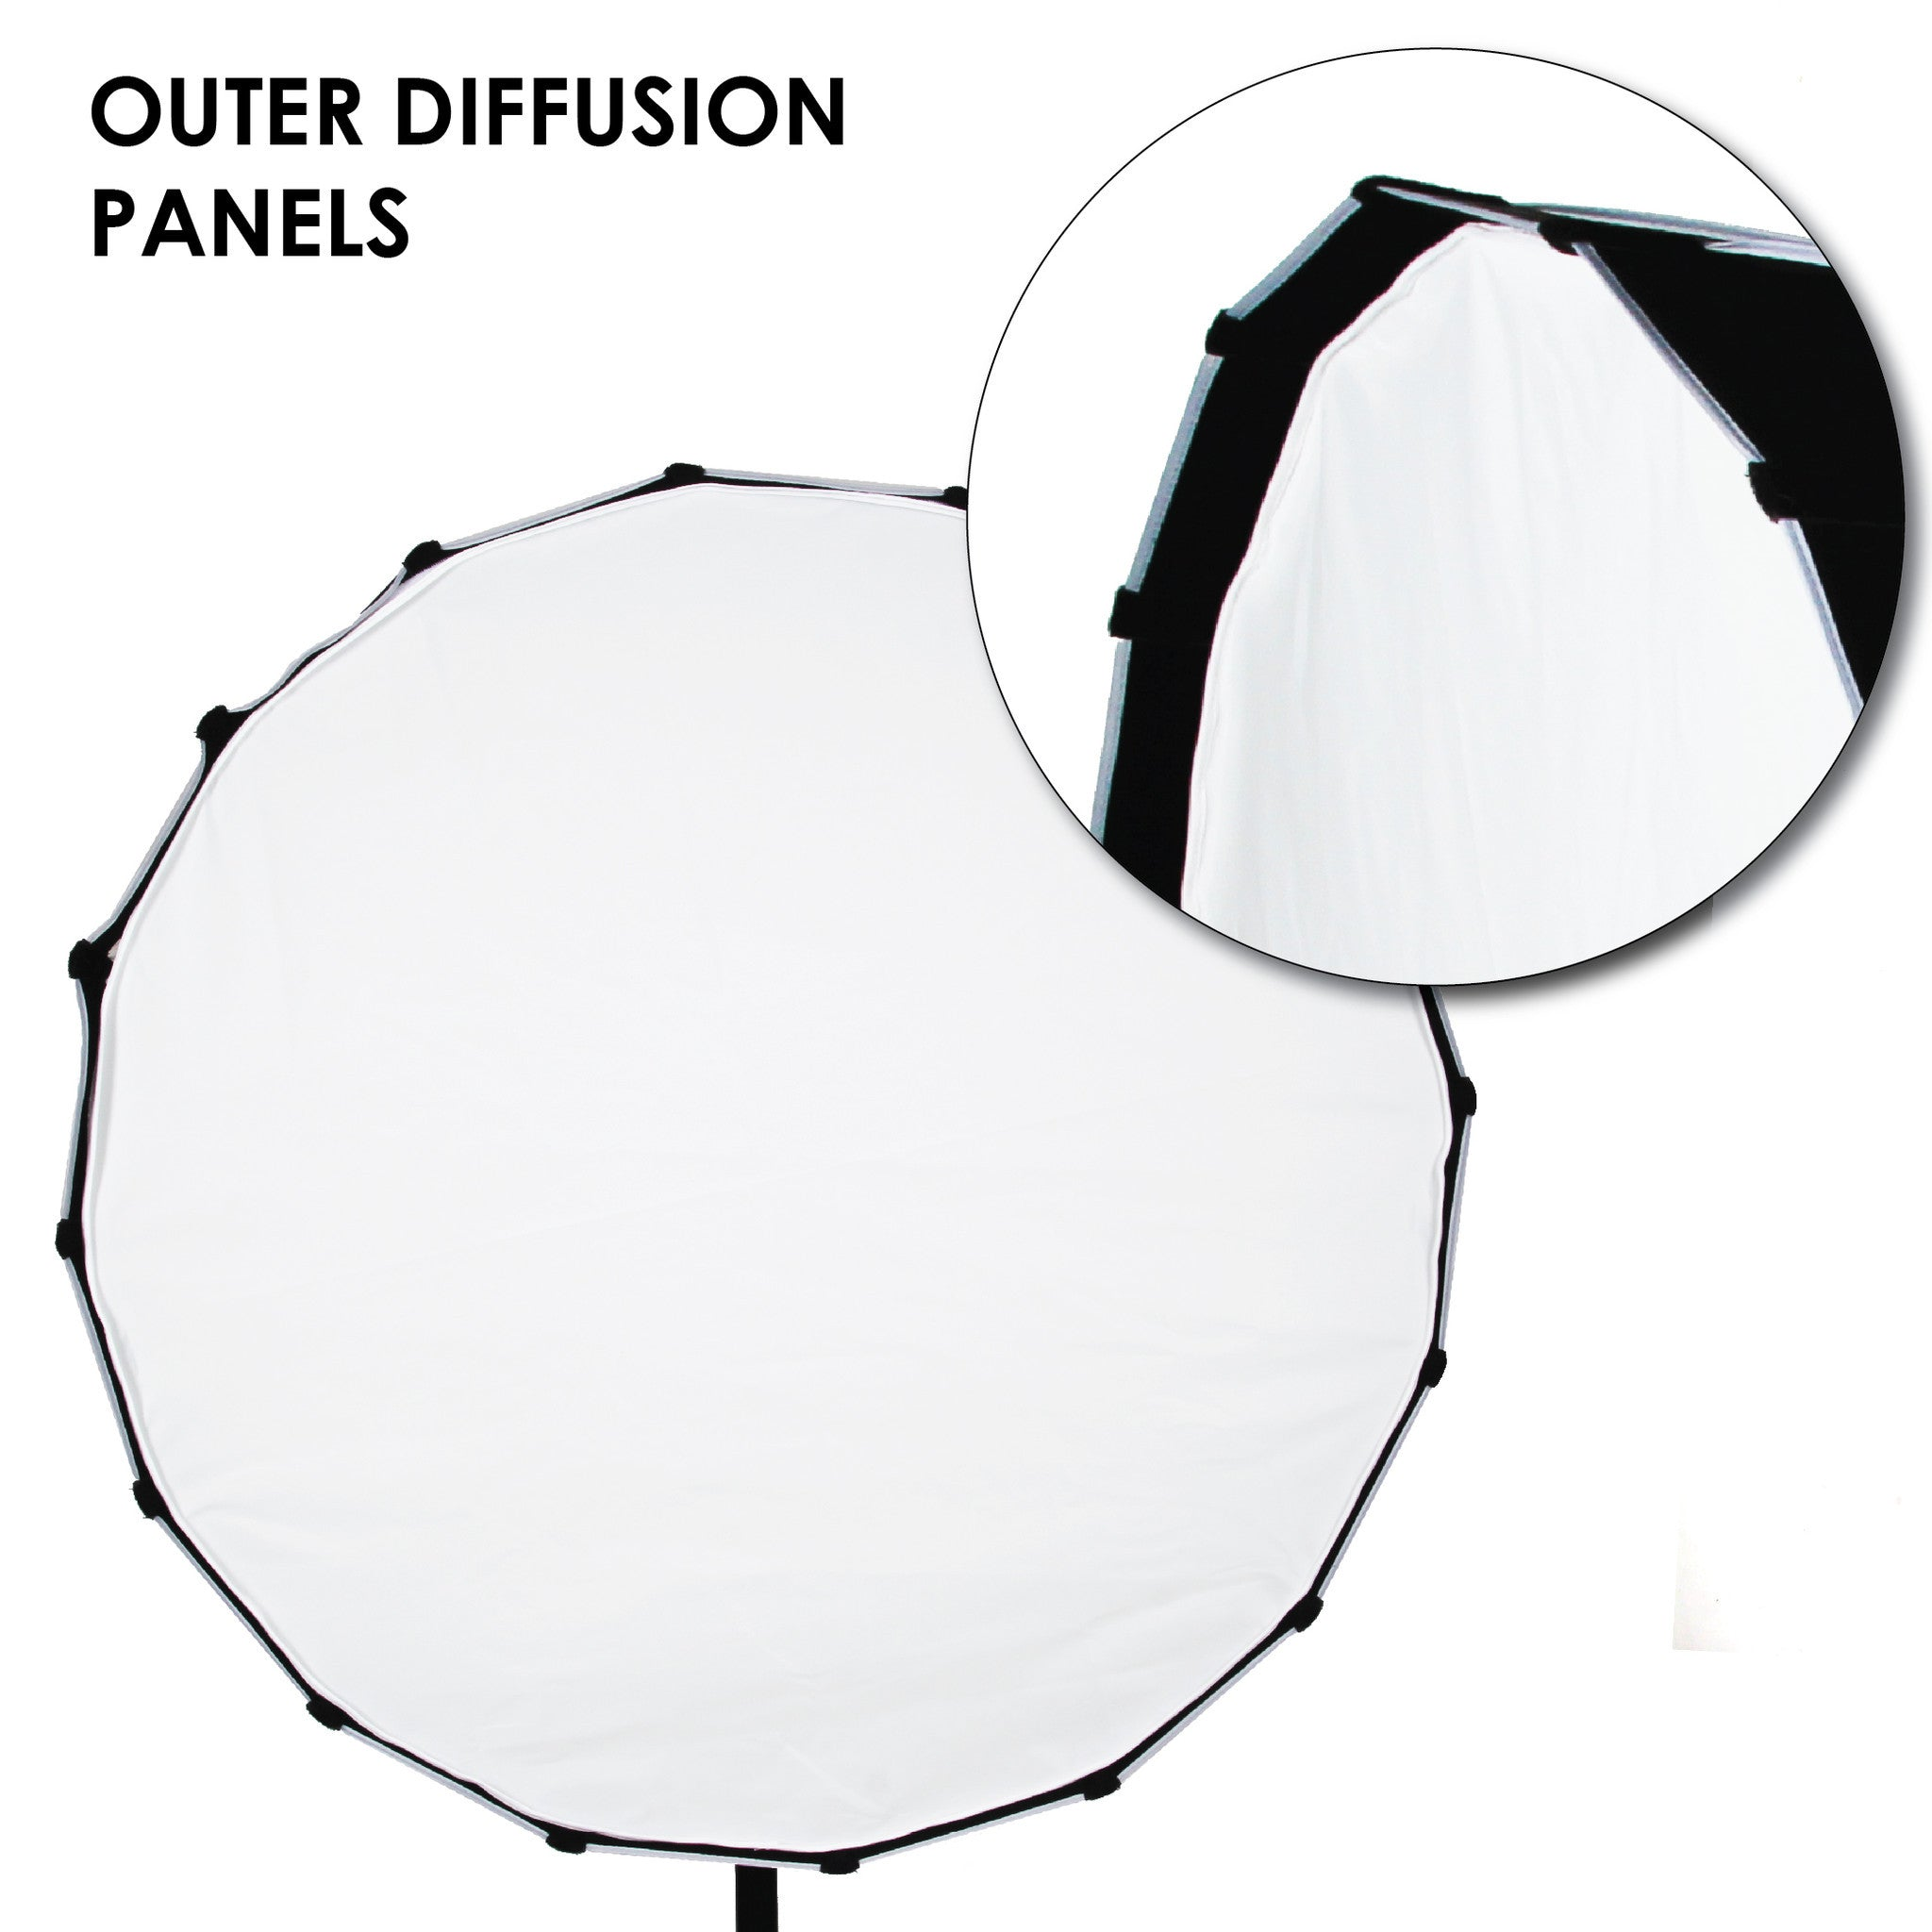 D-Fuse 35 Inch // 90cm para Softbox Carrying Bag Inner /& Outer Diffusion Panel 16 Rod Studio Diffusion Parabolic Umbrella Softbox with Bowens Mount para 90